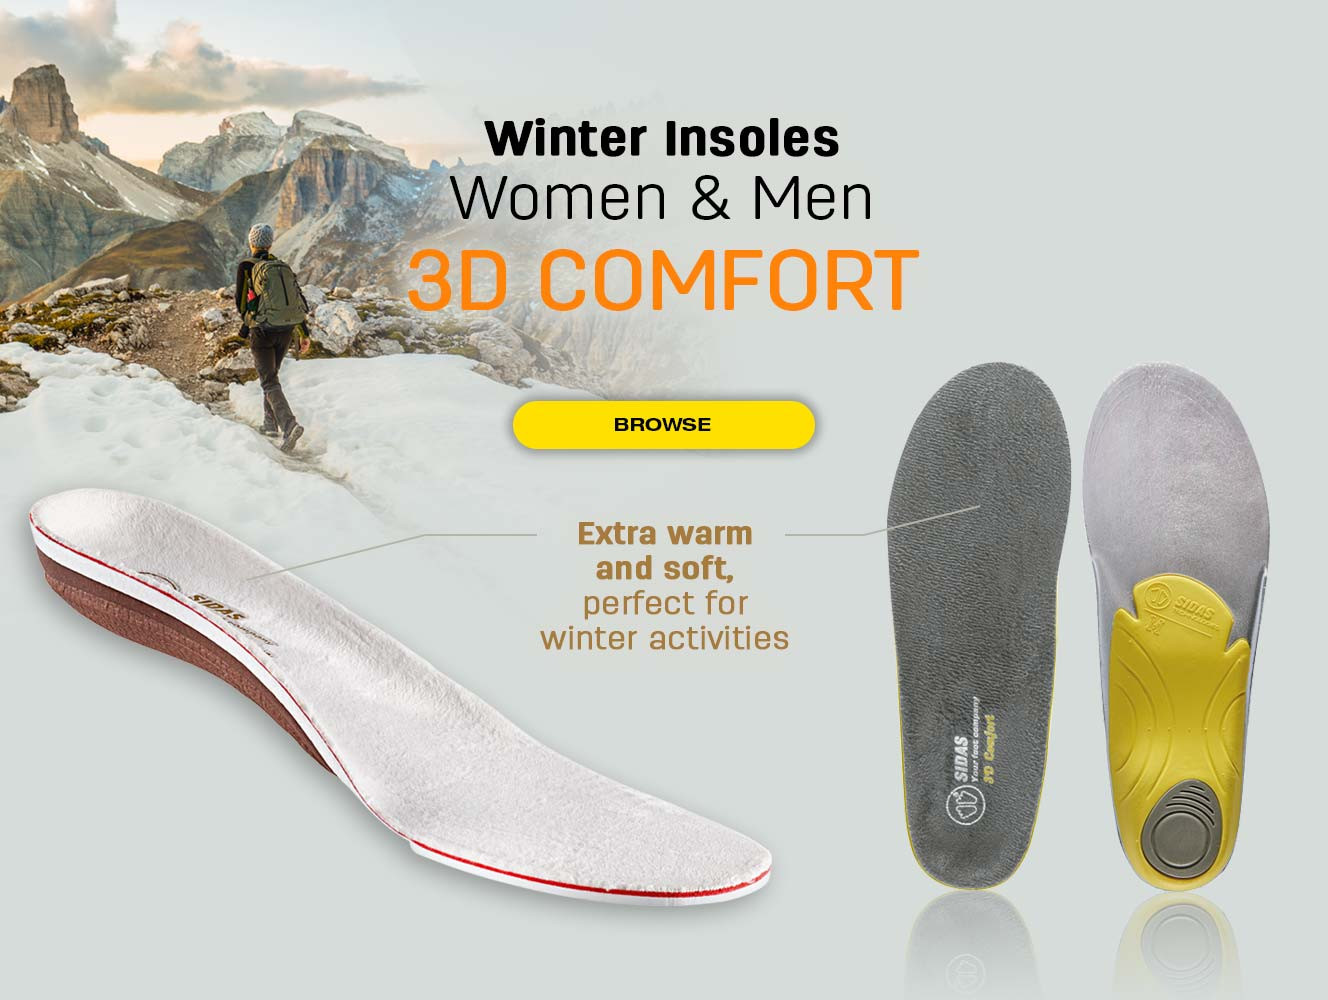 Extra warm and soft insoles, perfect for winter activities